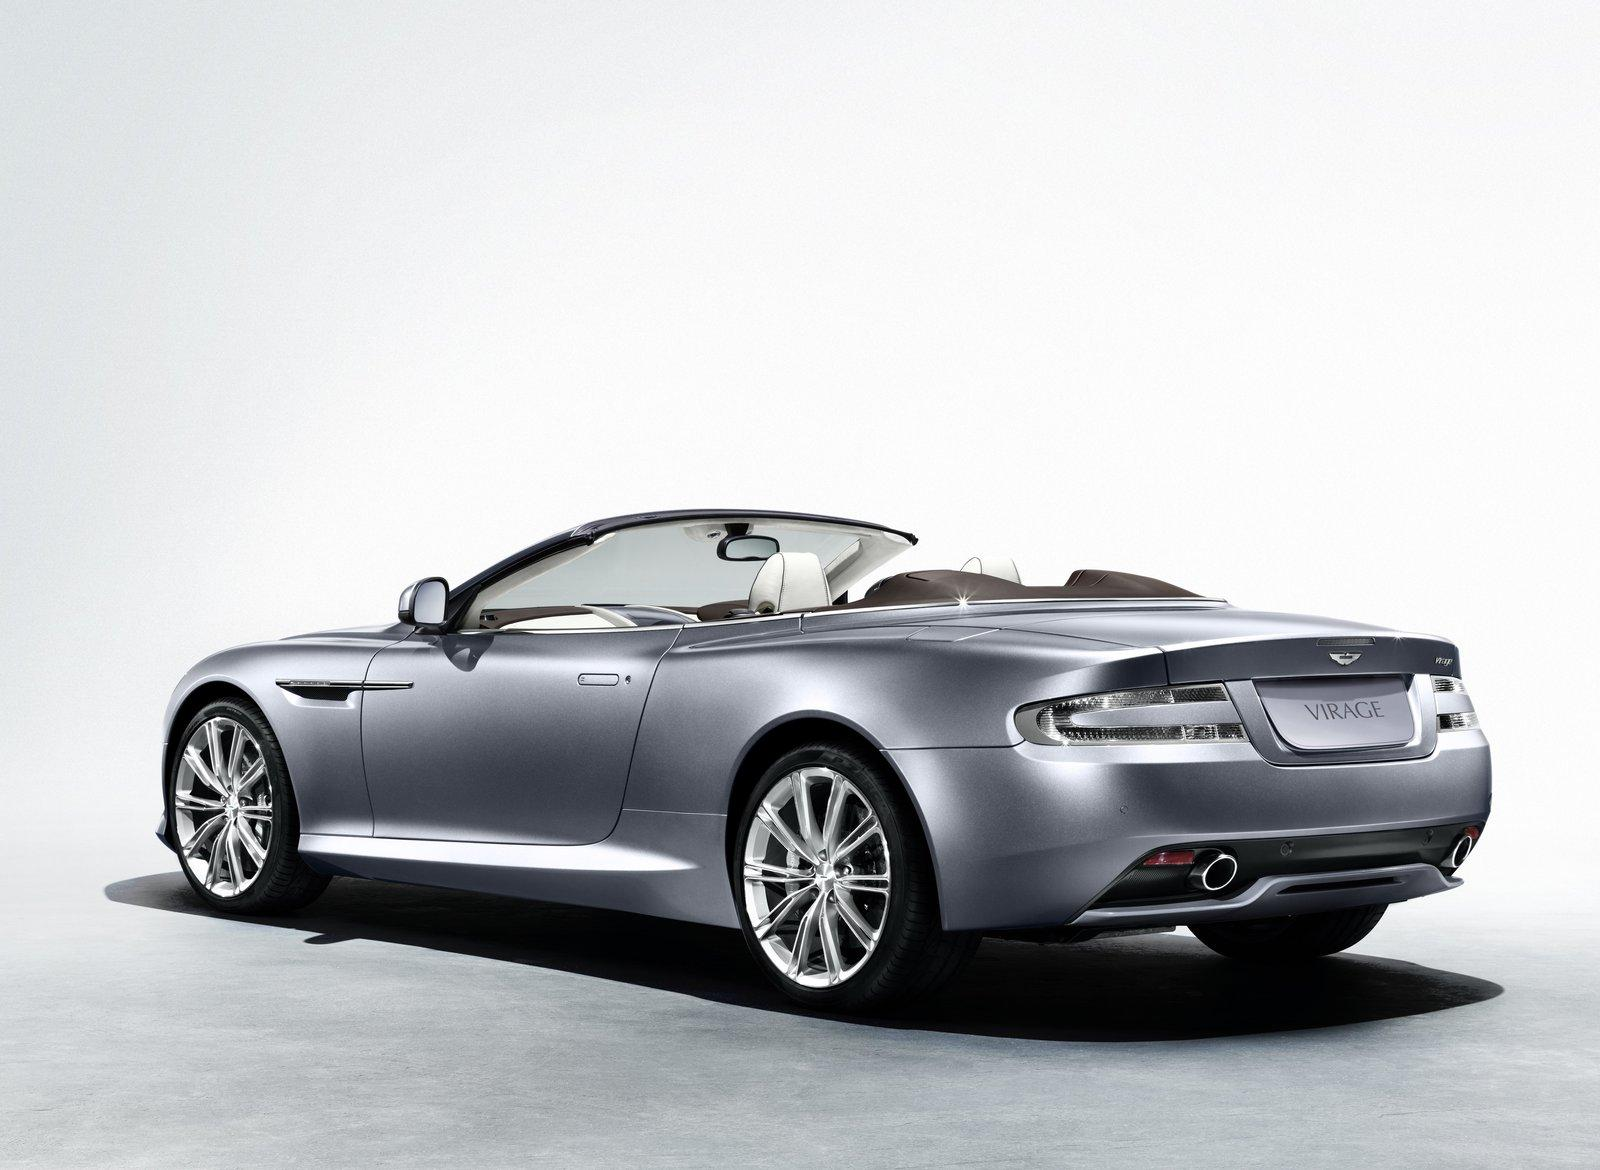 Aston Martin Virage convertible